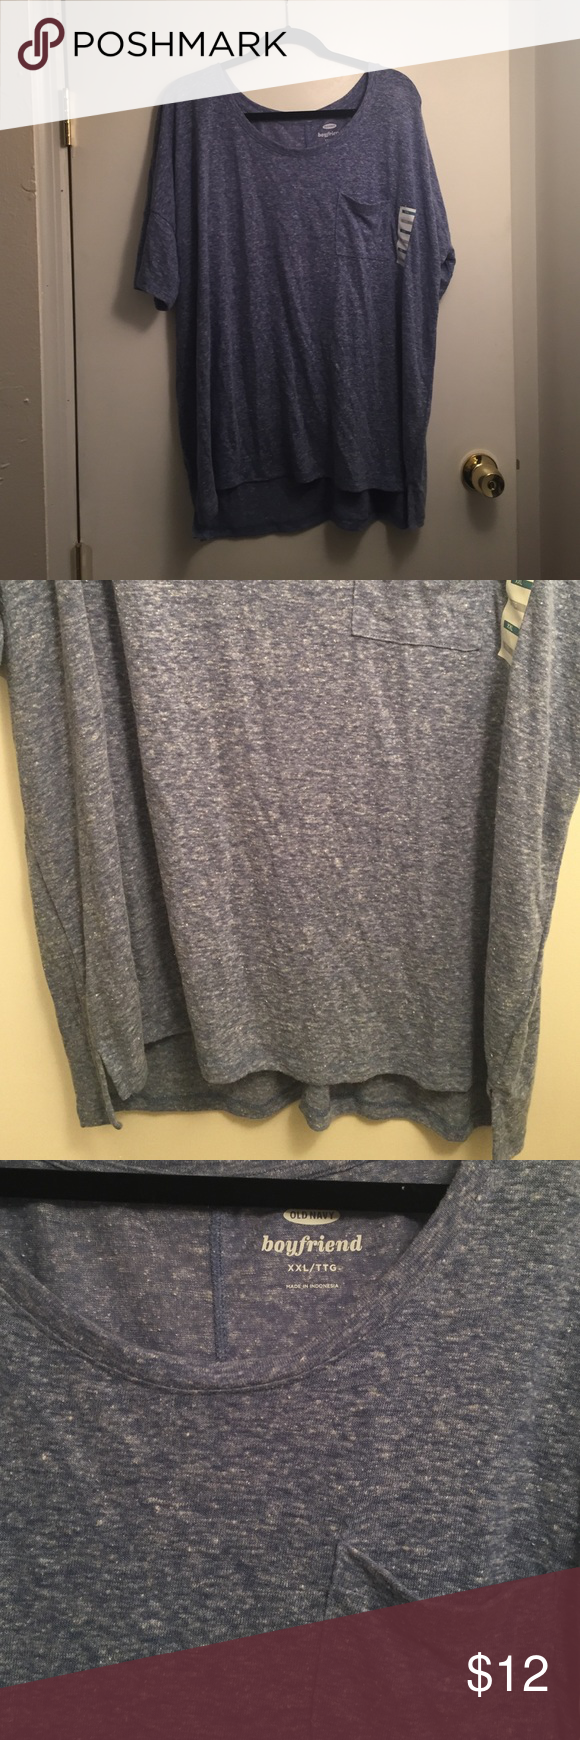 Blue Boyfriend Tee New w tags, blue and whitish boyfriend fit very comfy! Size xxl Old Navy Tops Tees - Short Sleeve